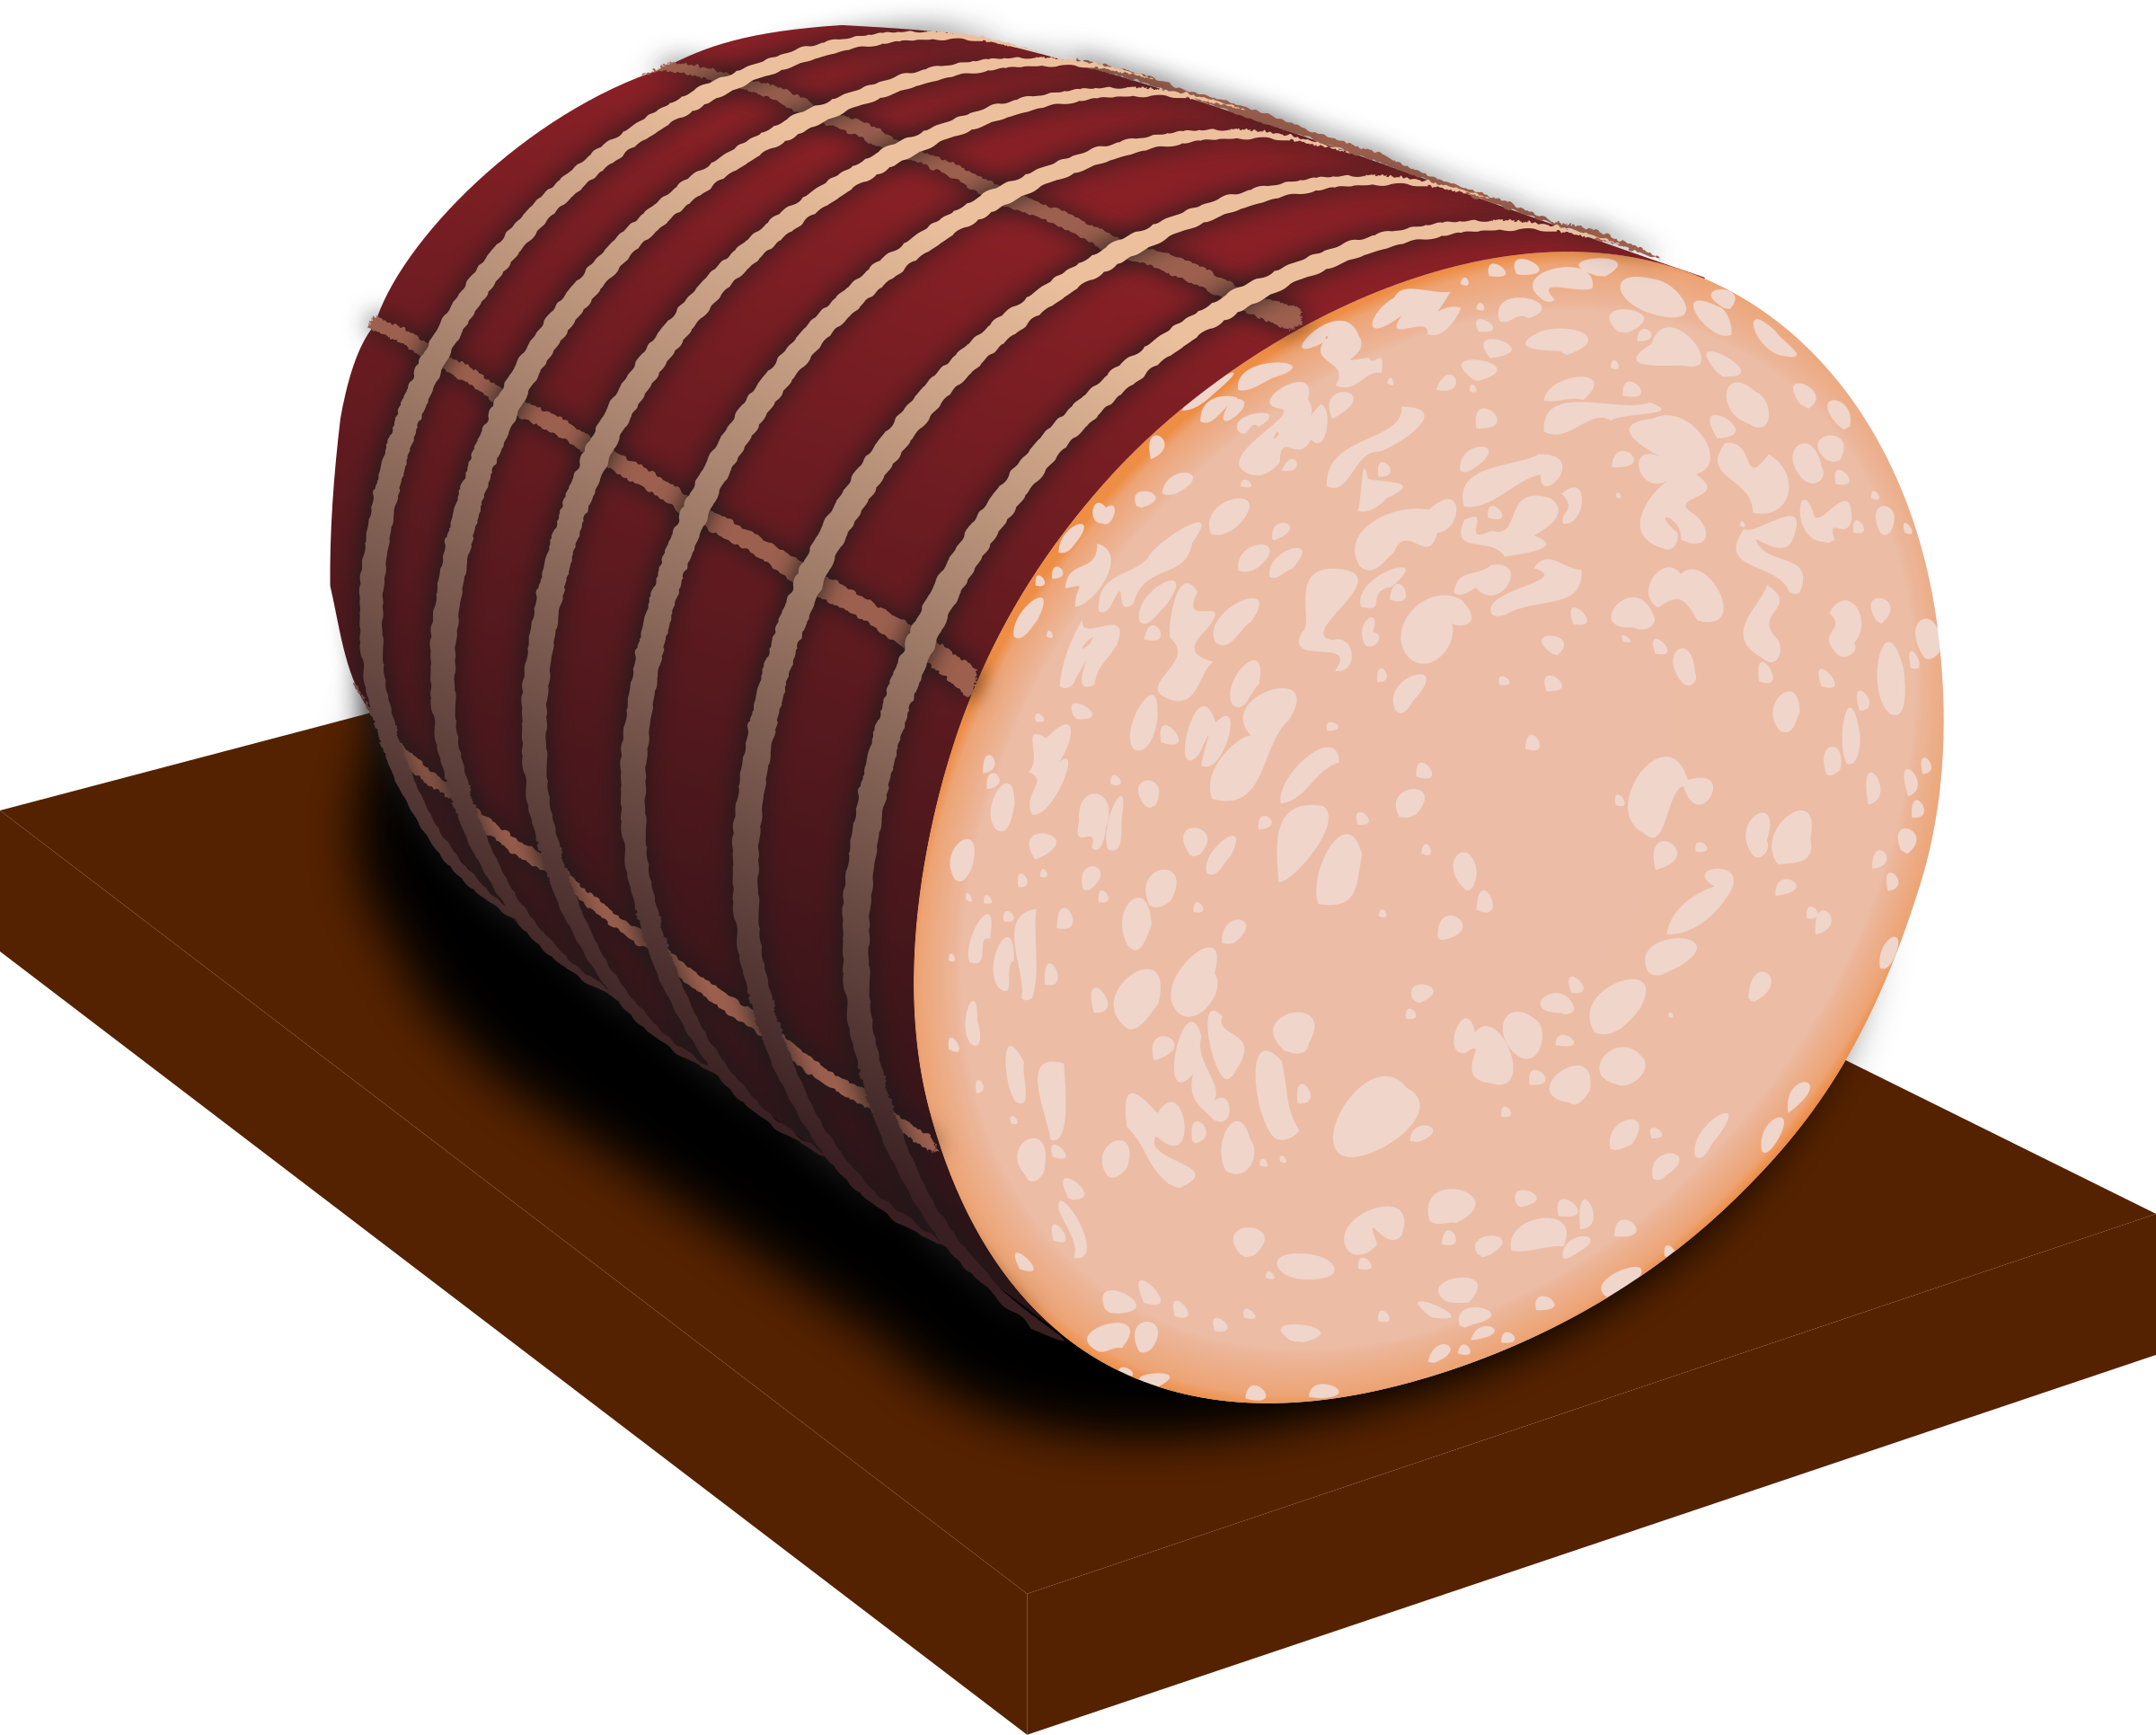 mortadella by picapica